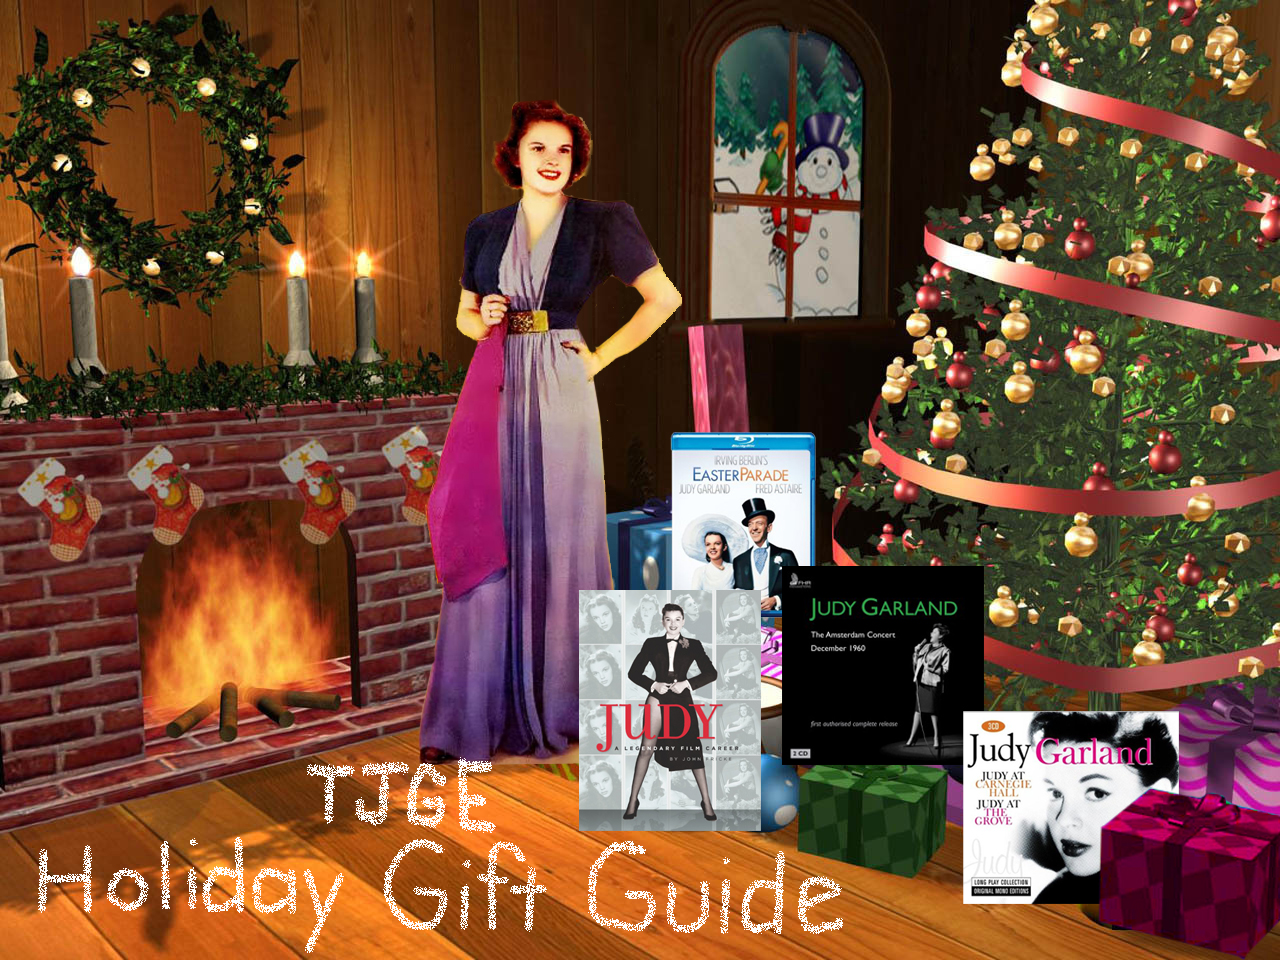 The Judy Garland Experience™: TJGE HOLIDAY GIFT GUIDE